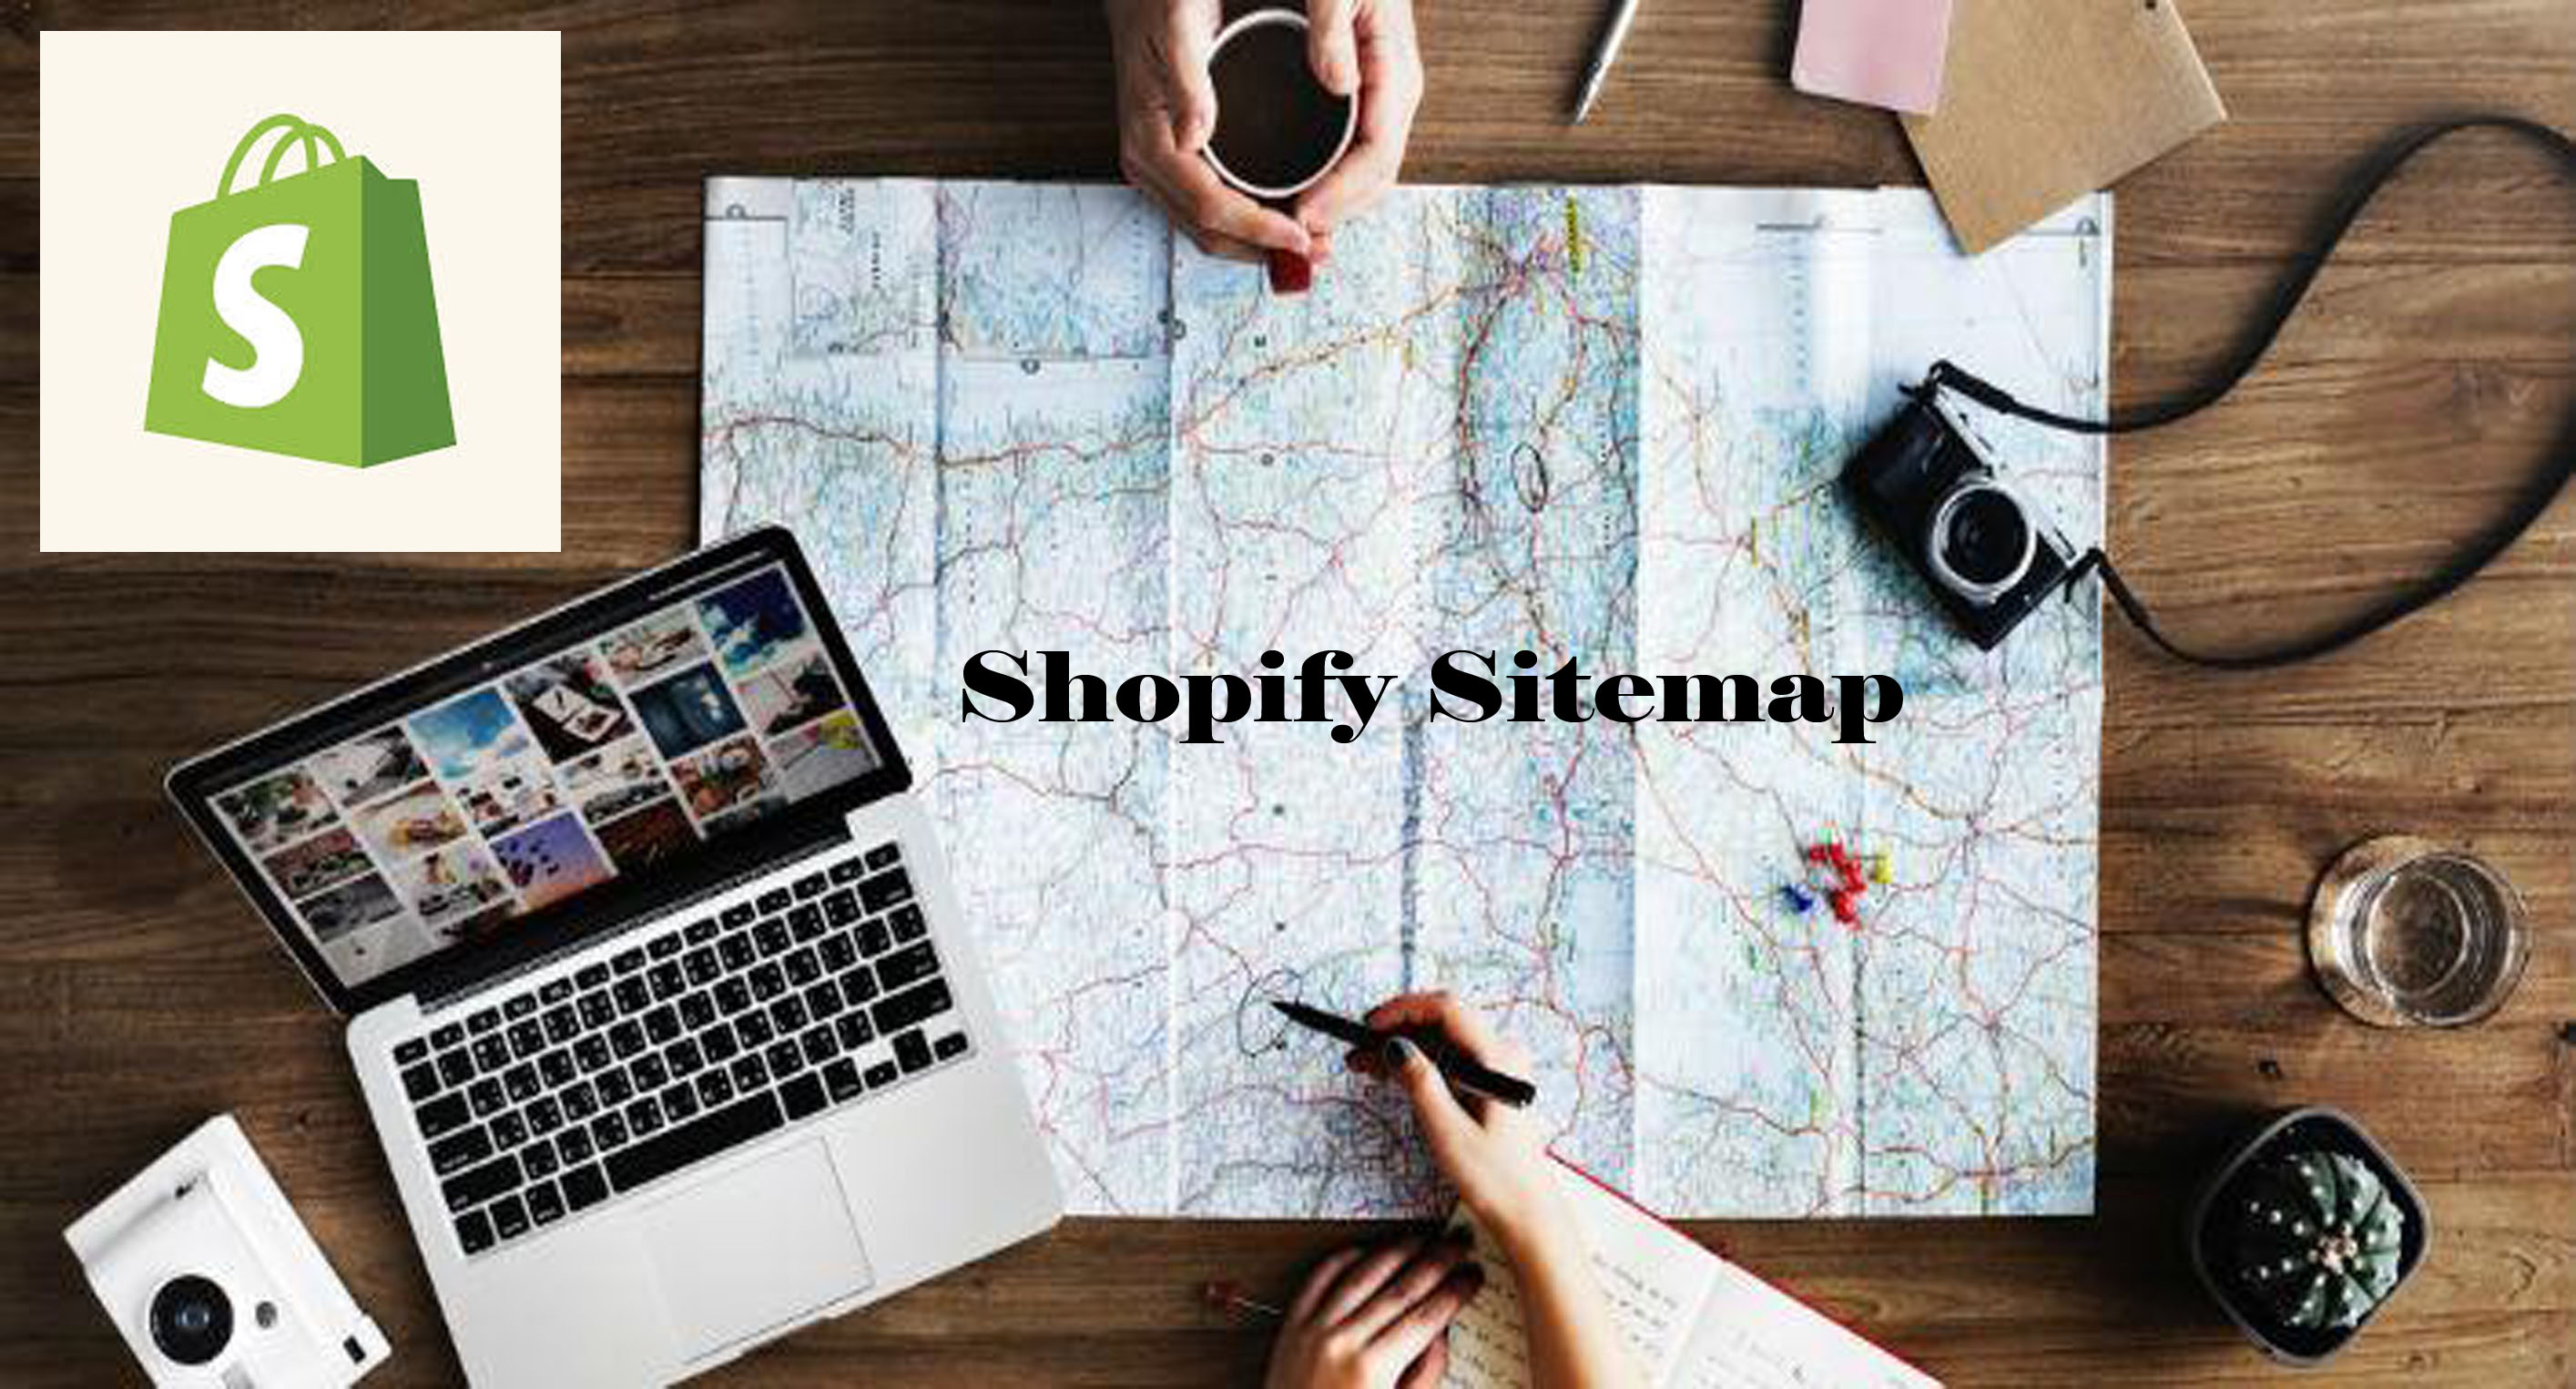 Shopify Sitemap – Shopify Account login | Shopify Online Store